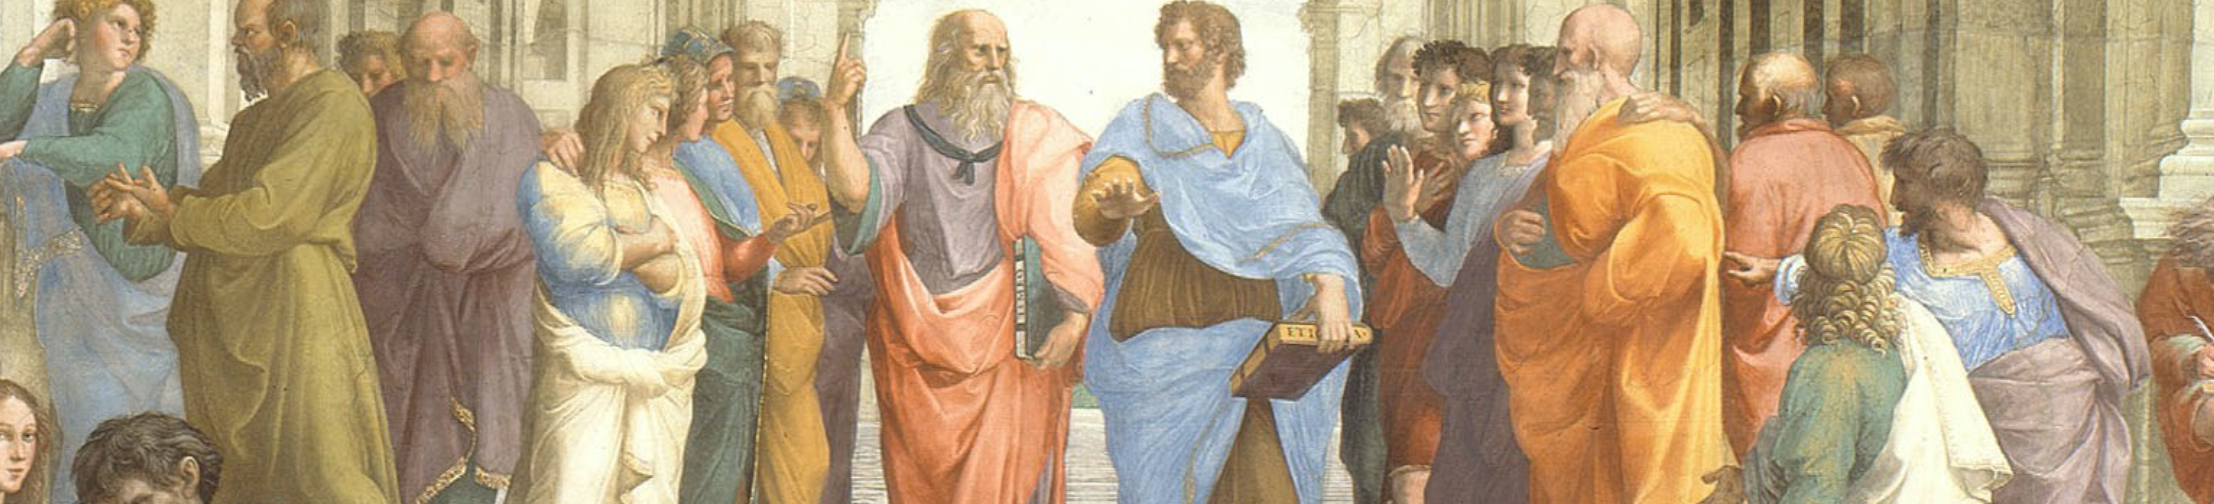 school-of-athens-banner